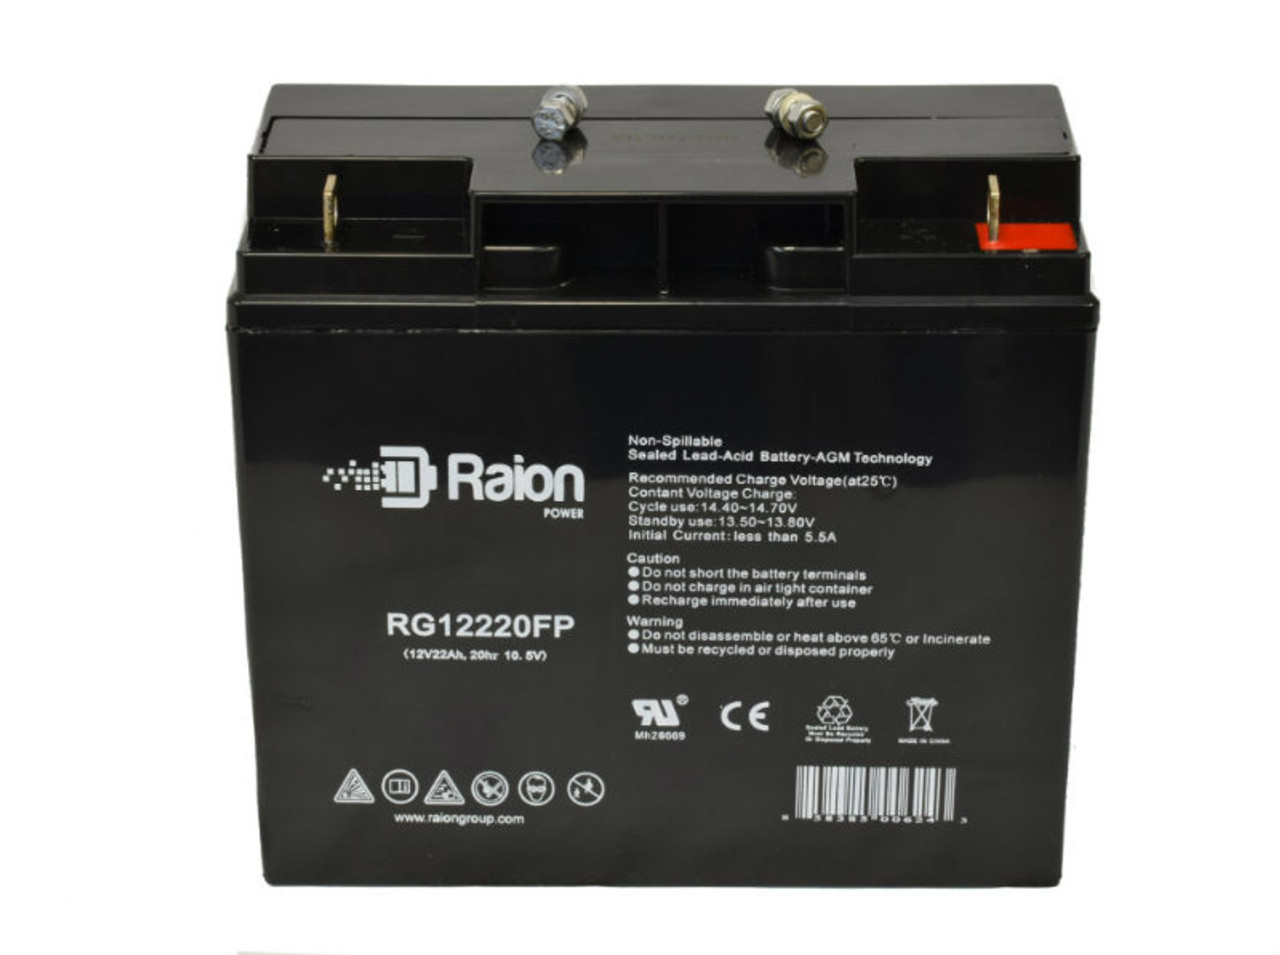 RG12220FP Sealed Lead Acid Battery Pack For Bruno Typhoon Mobility Scooter